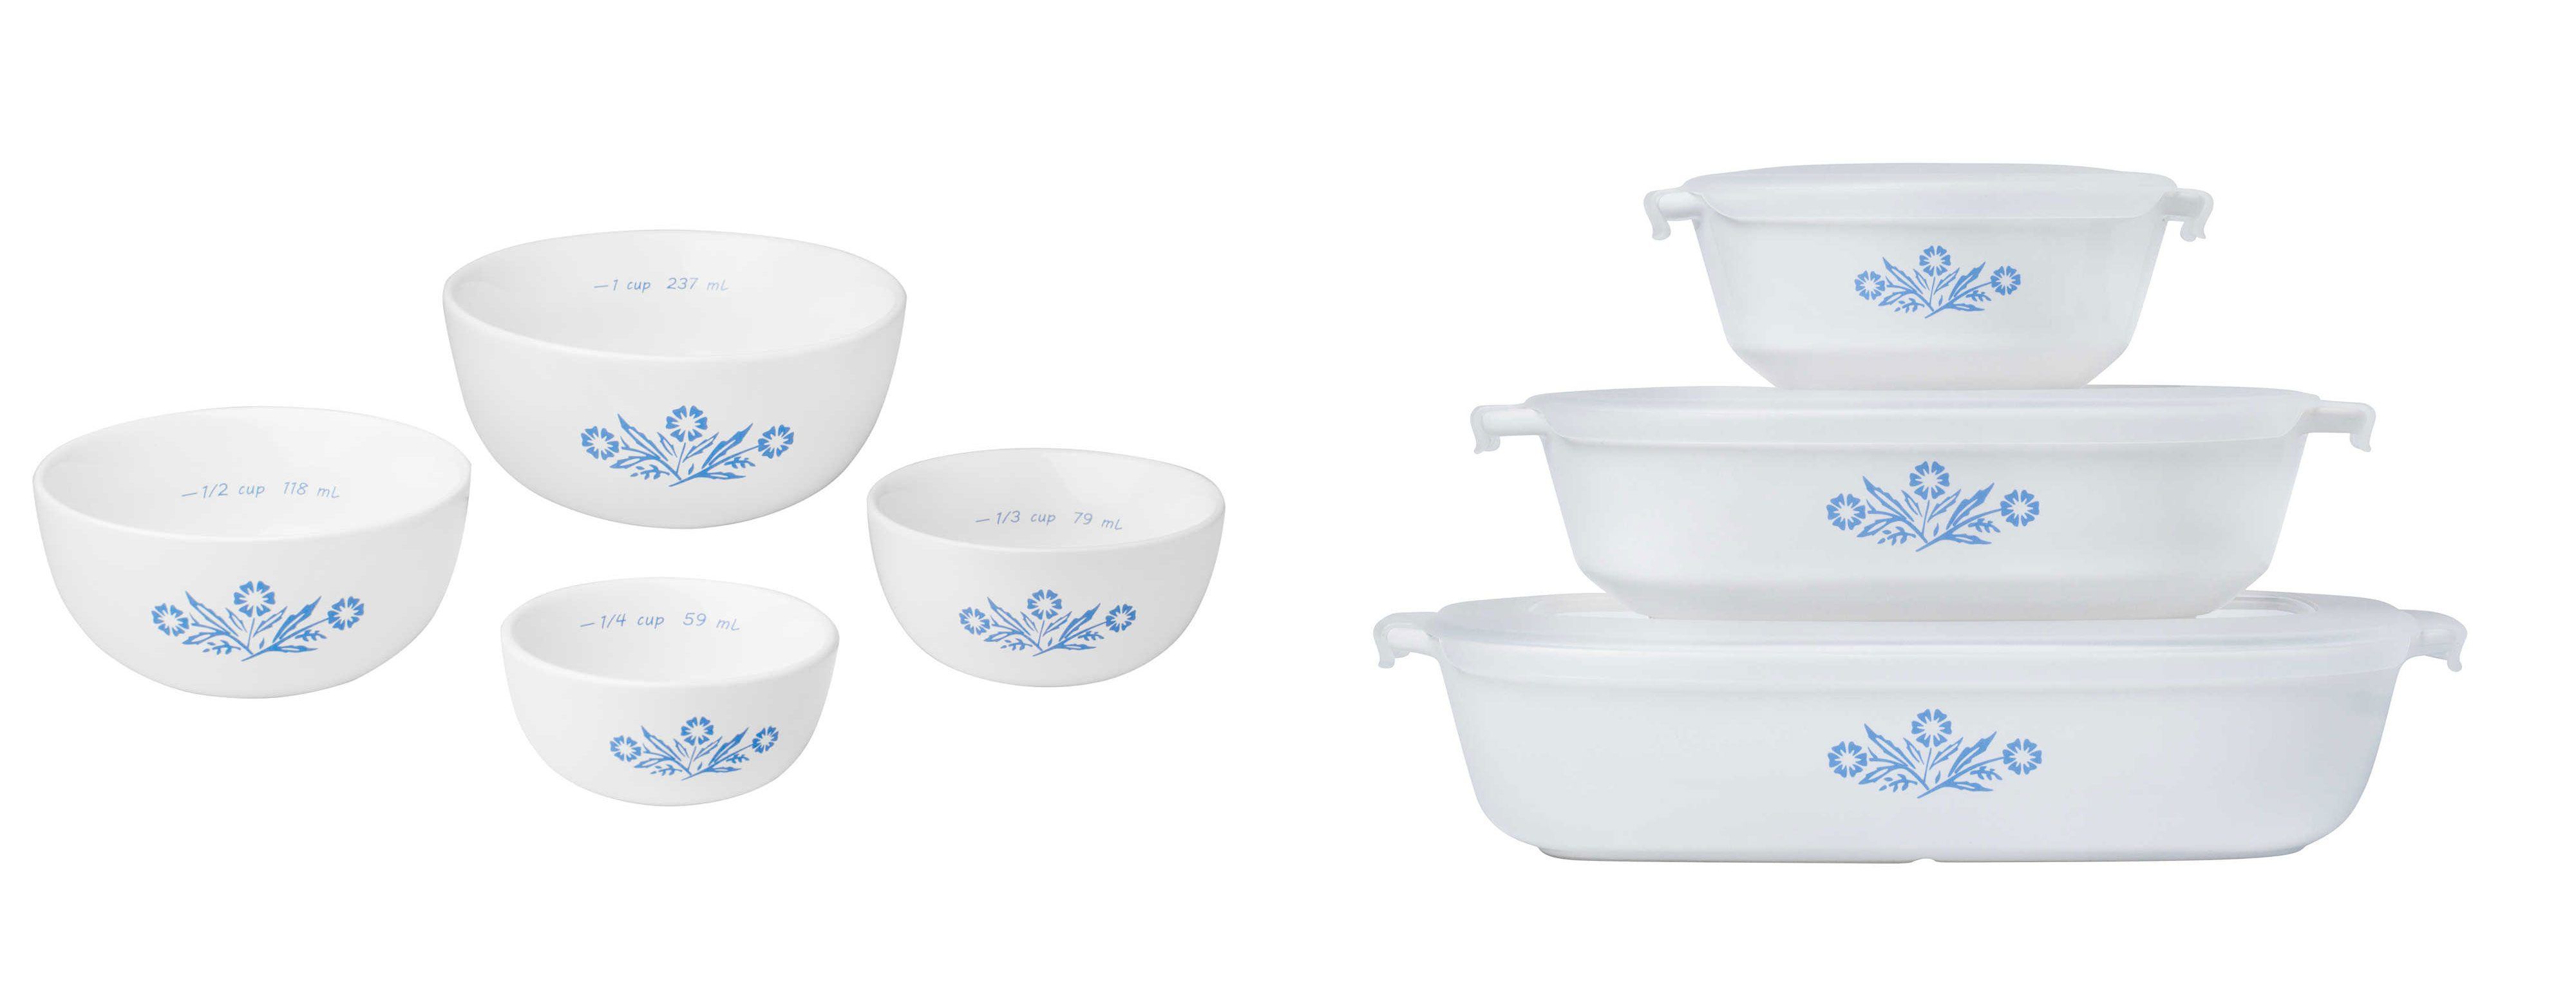 Blue And White Corningware Is Back Heres What You Need To Know